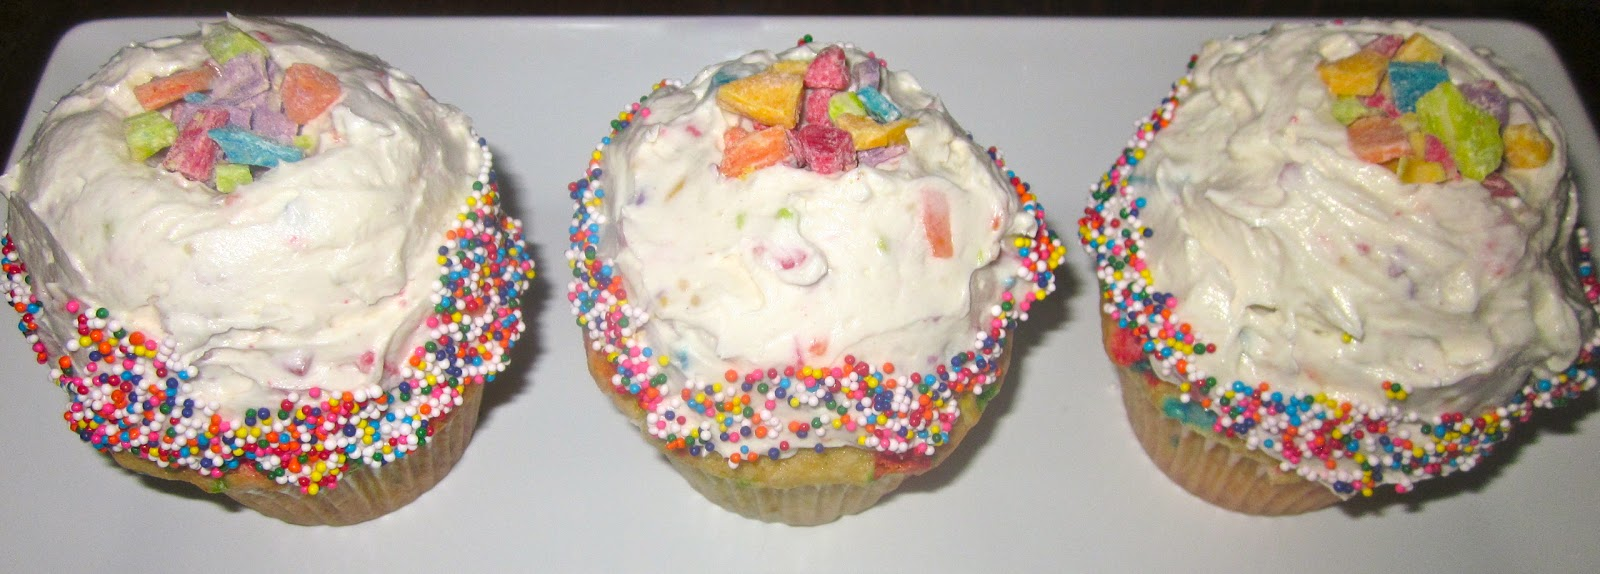 ... : Homemade Funfetti Cupcakes with Whipped Rainbow Chip Buttercream